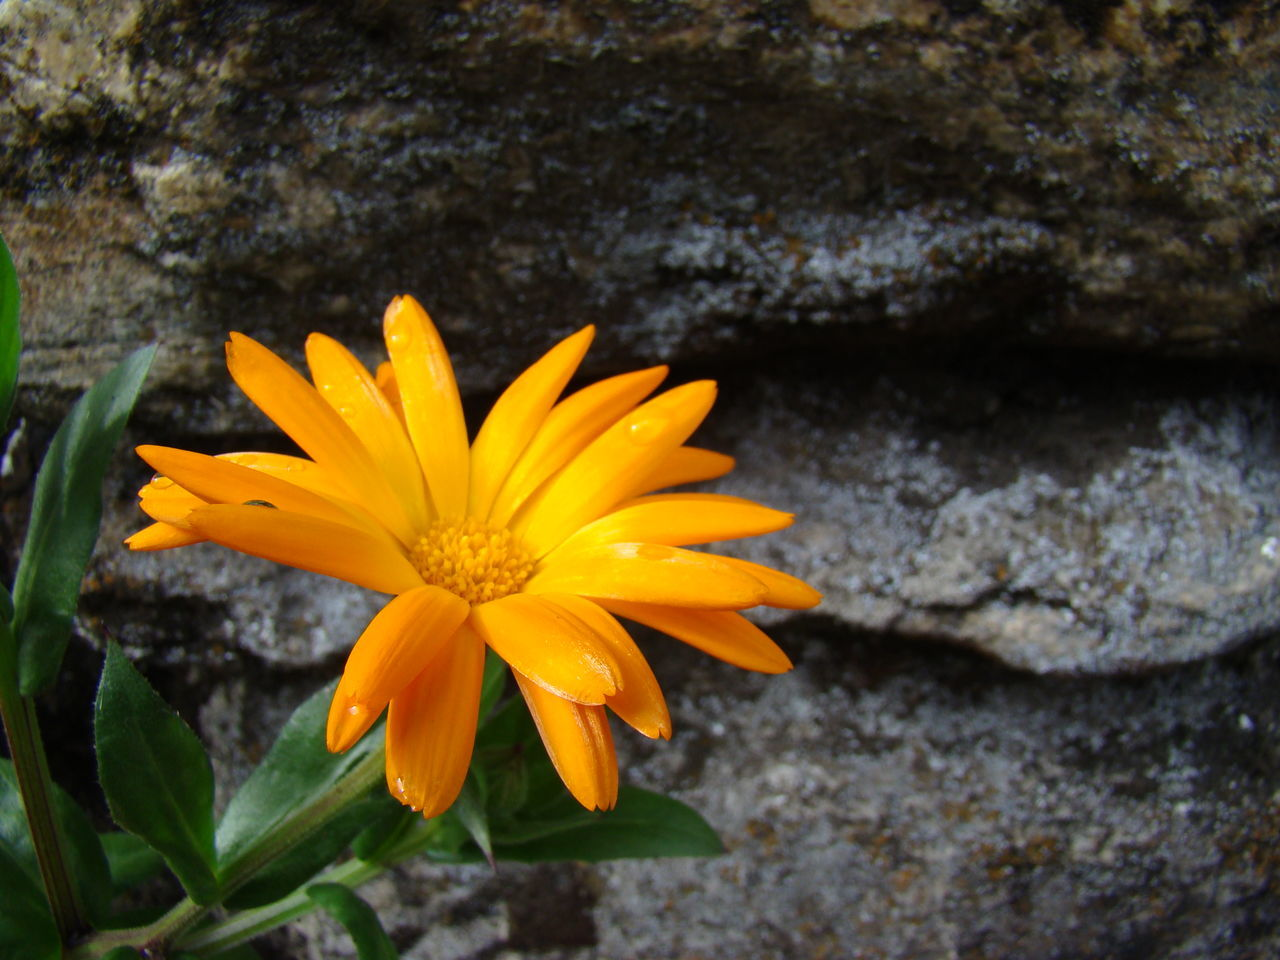 flower, petal, yellow, fragility, flower head, beauty in nature, nature, freshness, growth, blooming, plant, no people, outdoors, pollen, close-up, day, gazania